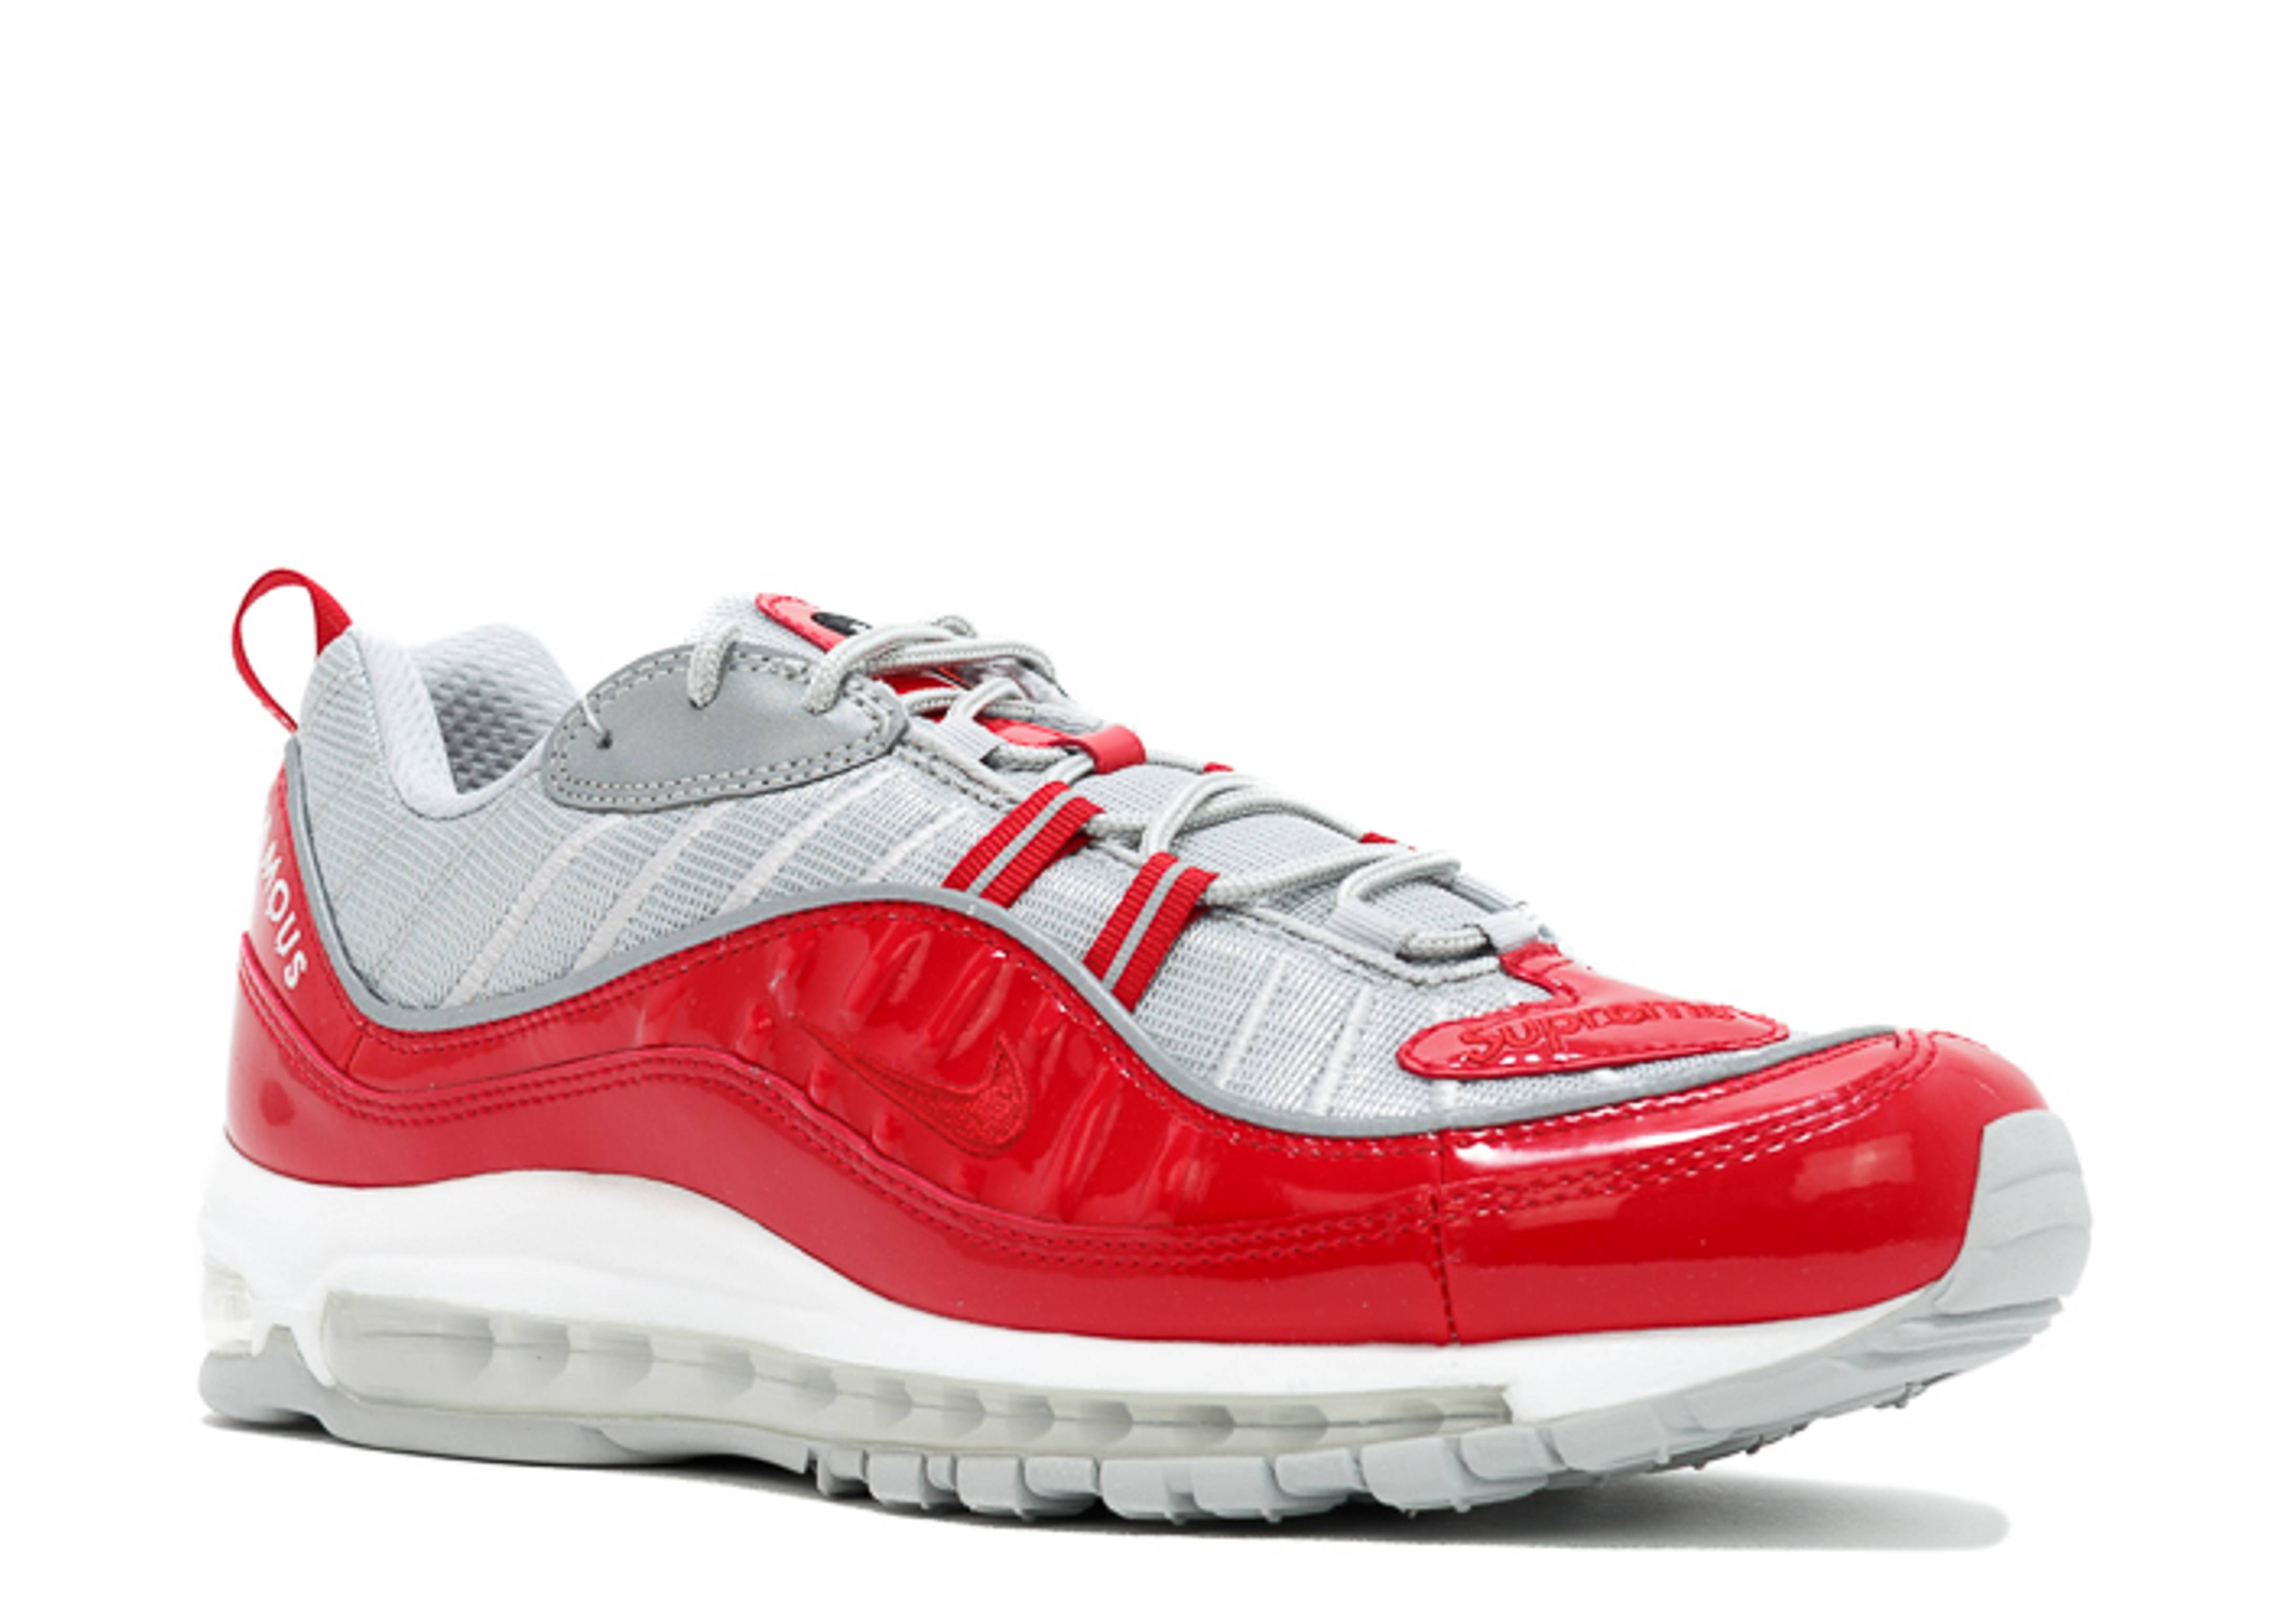 cf68d43f11 and cheap nike air max 95 white comet red og mens running shoes 609048 100  0h394yfz8; air max 98 supreme supreme